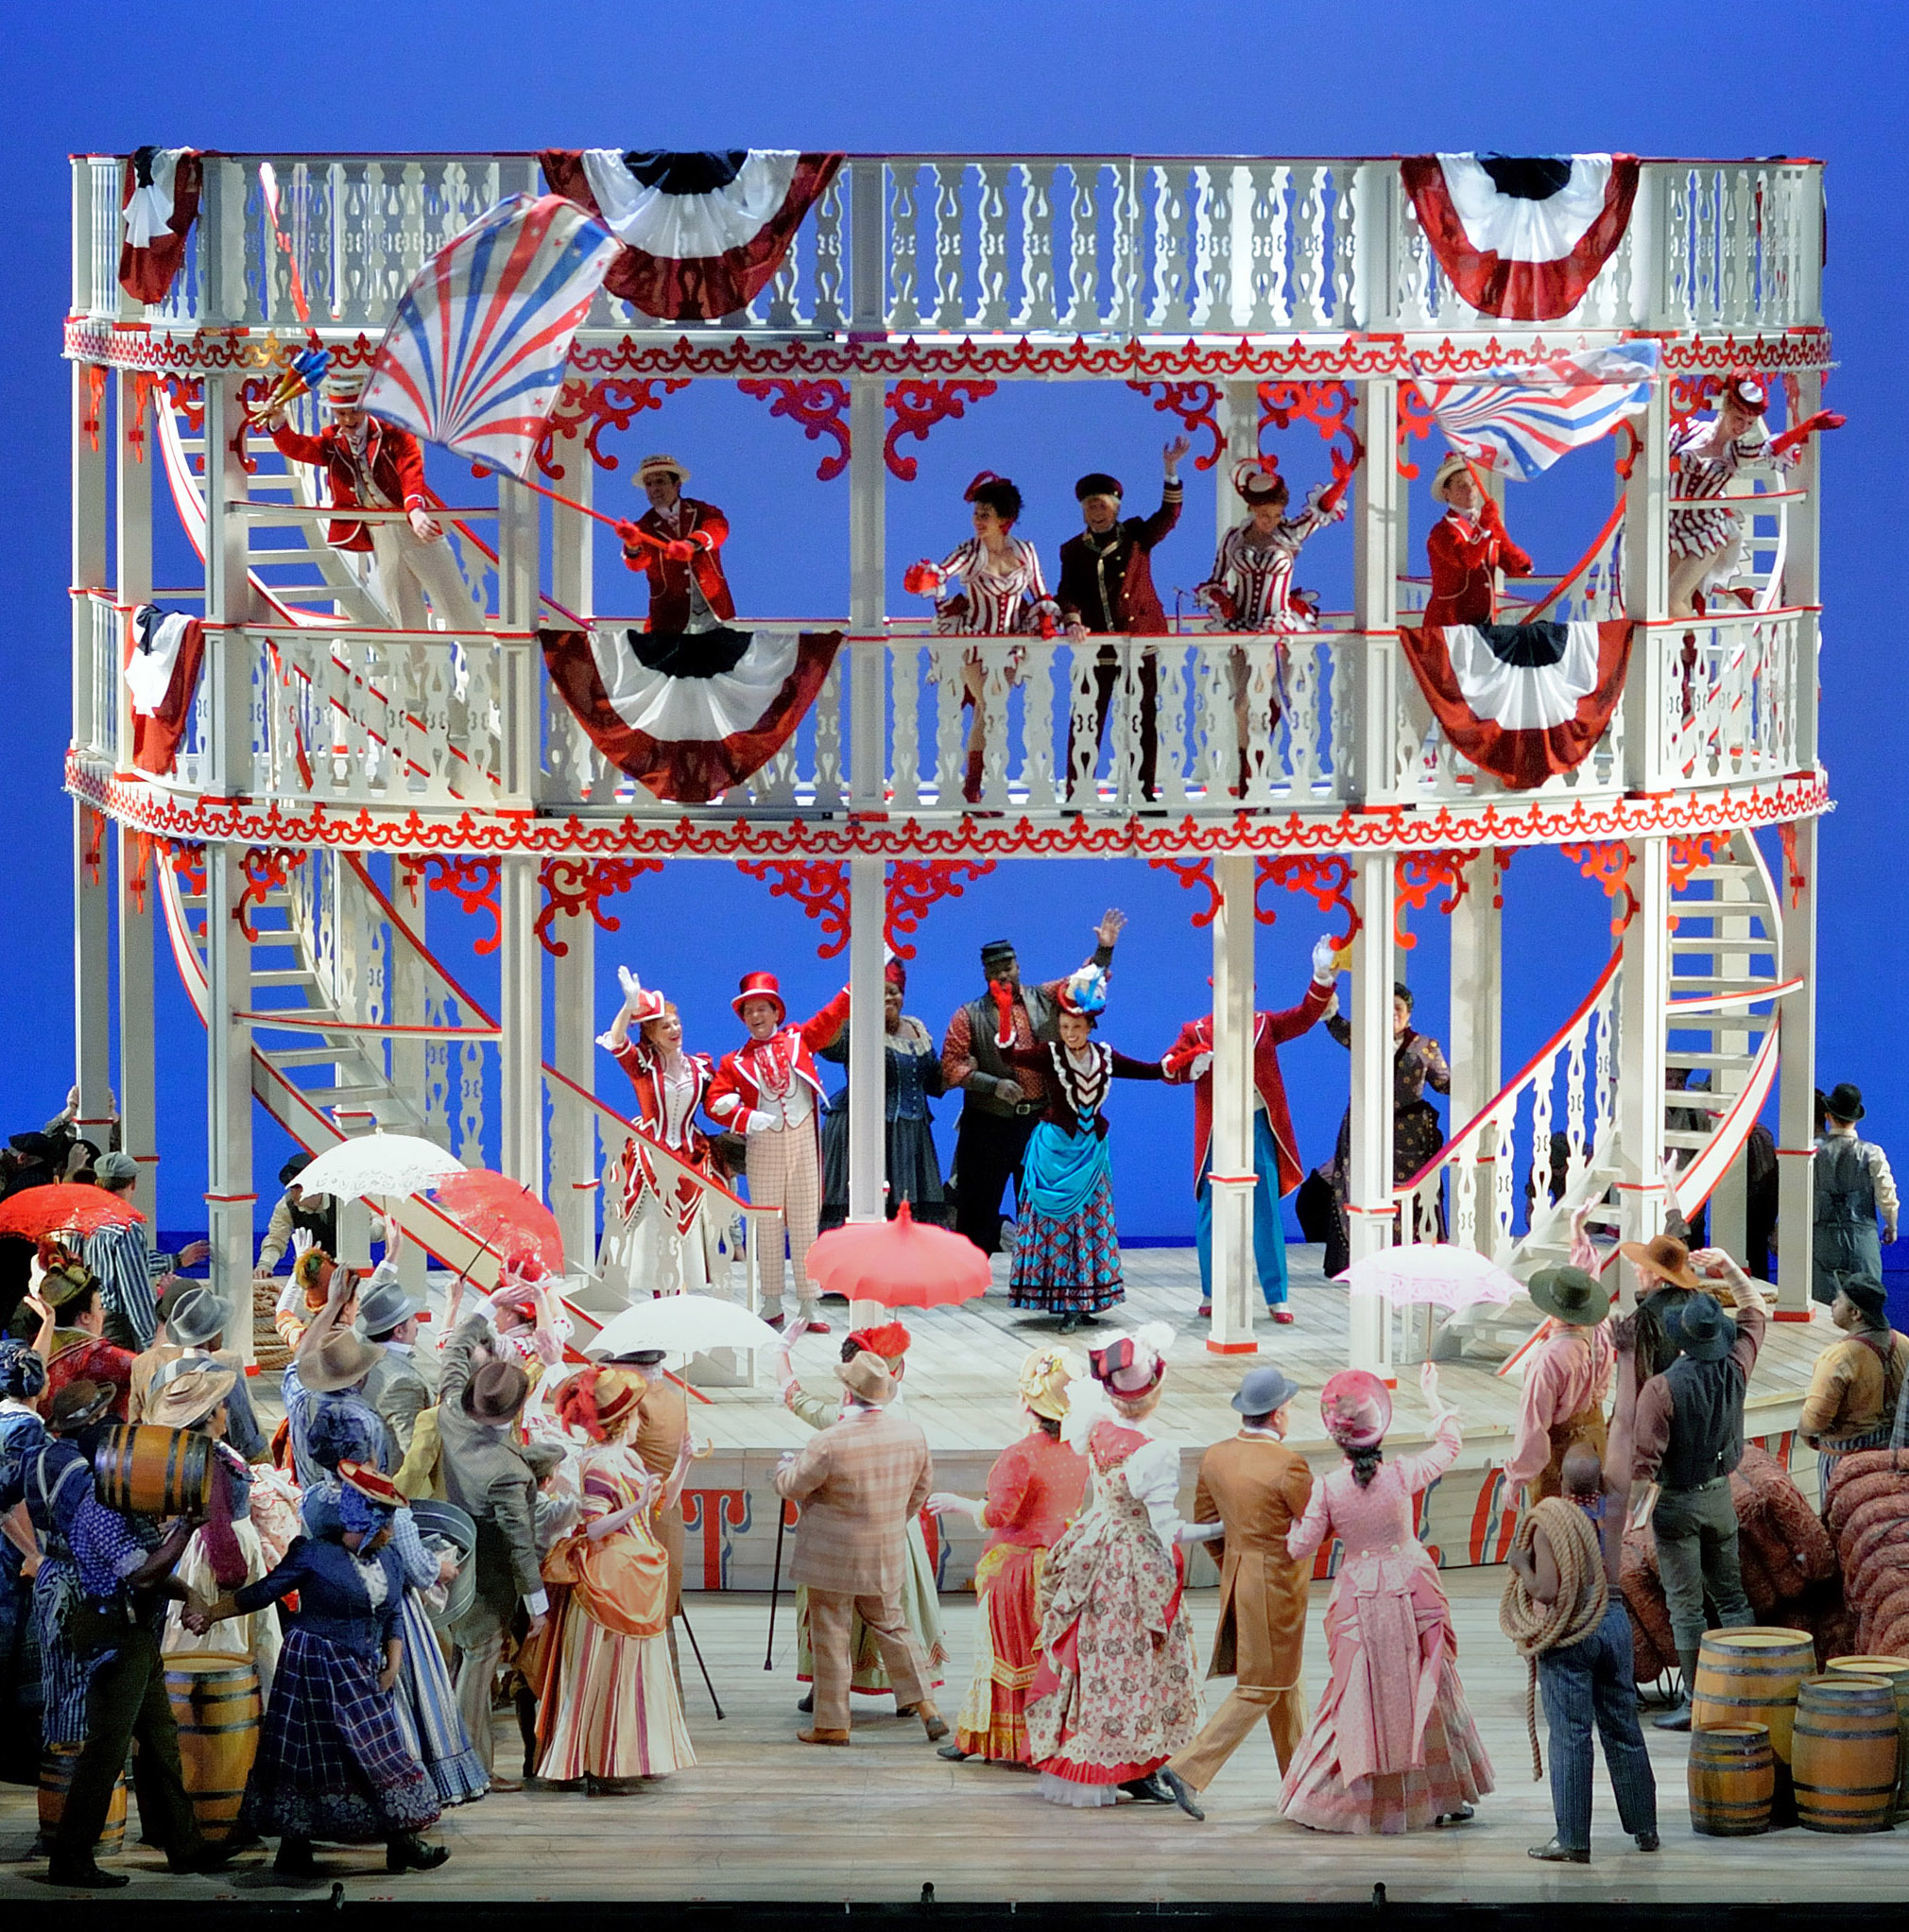 showboat production critique Crucible theatre: showboat production - see 621 traveller reviews, 83 candid photos, and great deals for sheffield, uk, at tripadvisor.